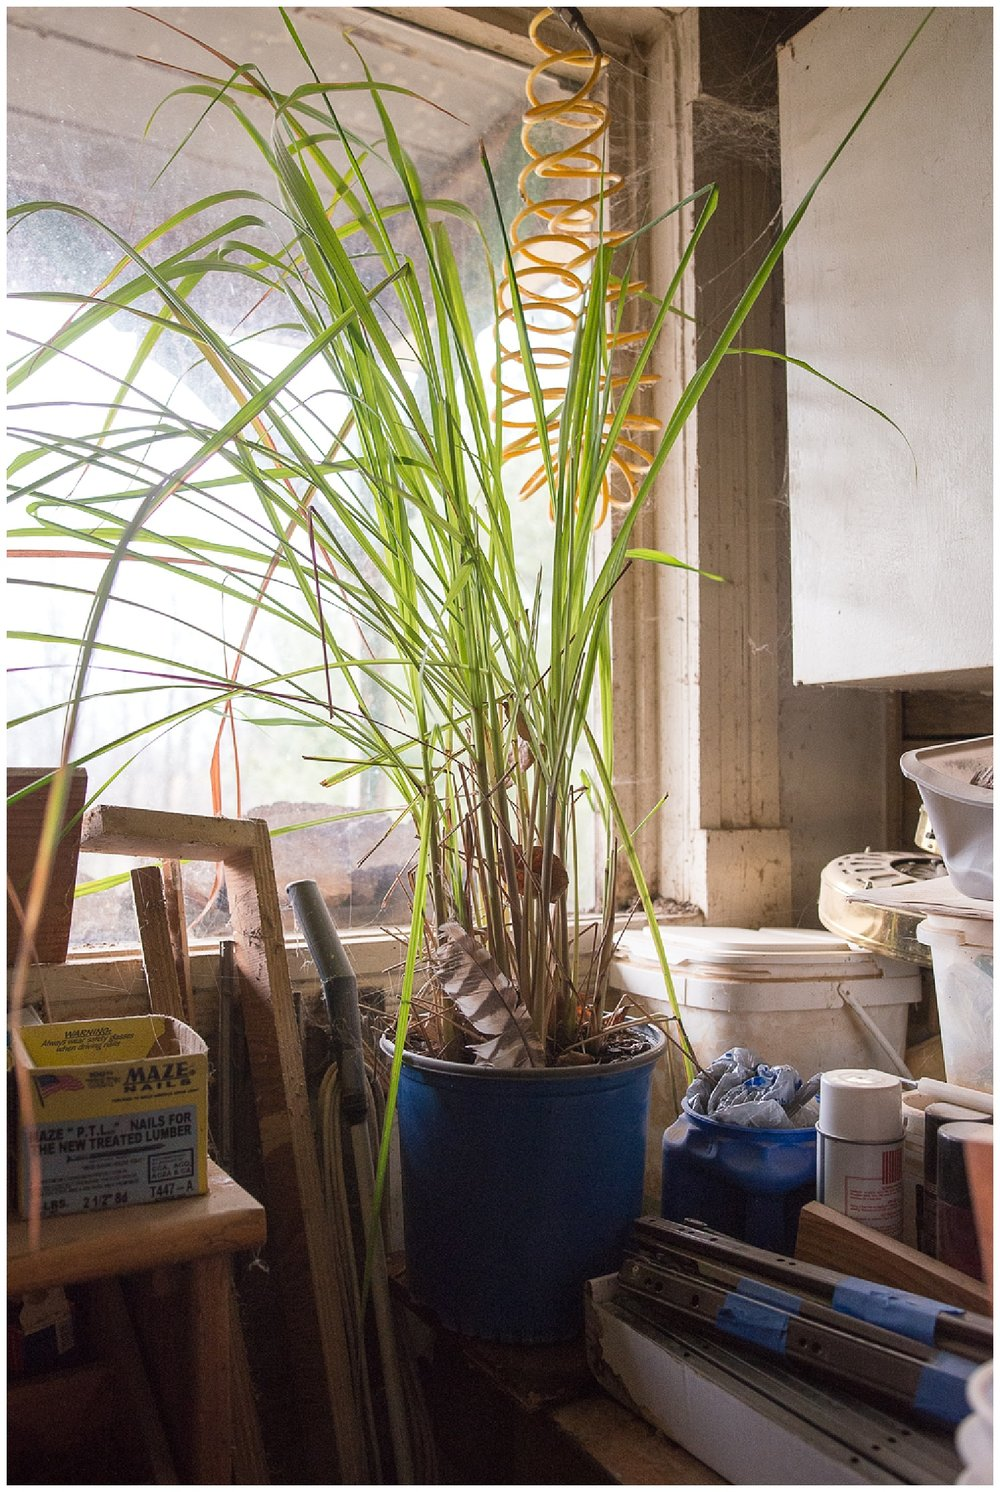 Josephine's lemongrass.  She wasn't around for us to get a picture of, so this will have to serve as her proxy.